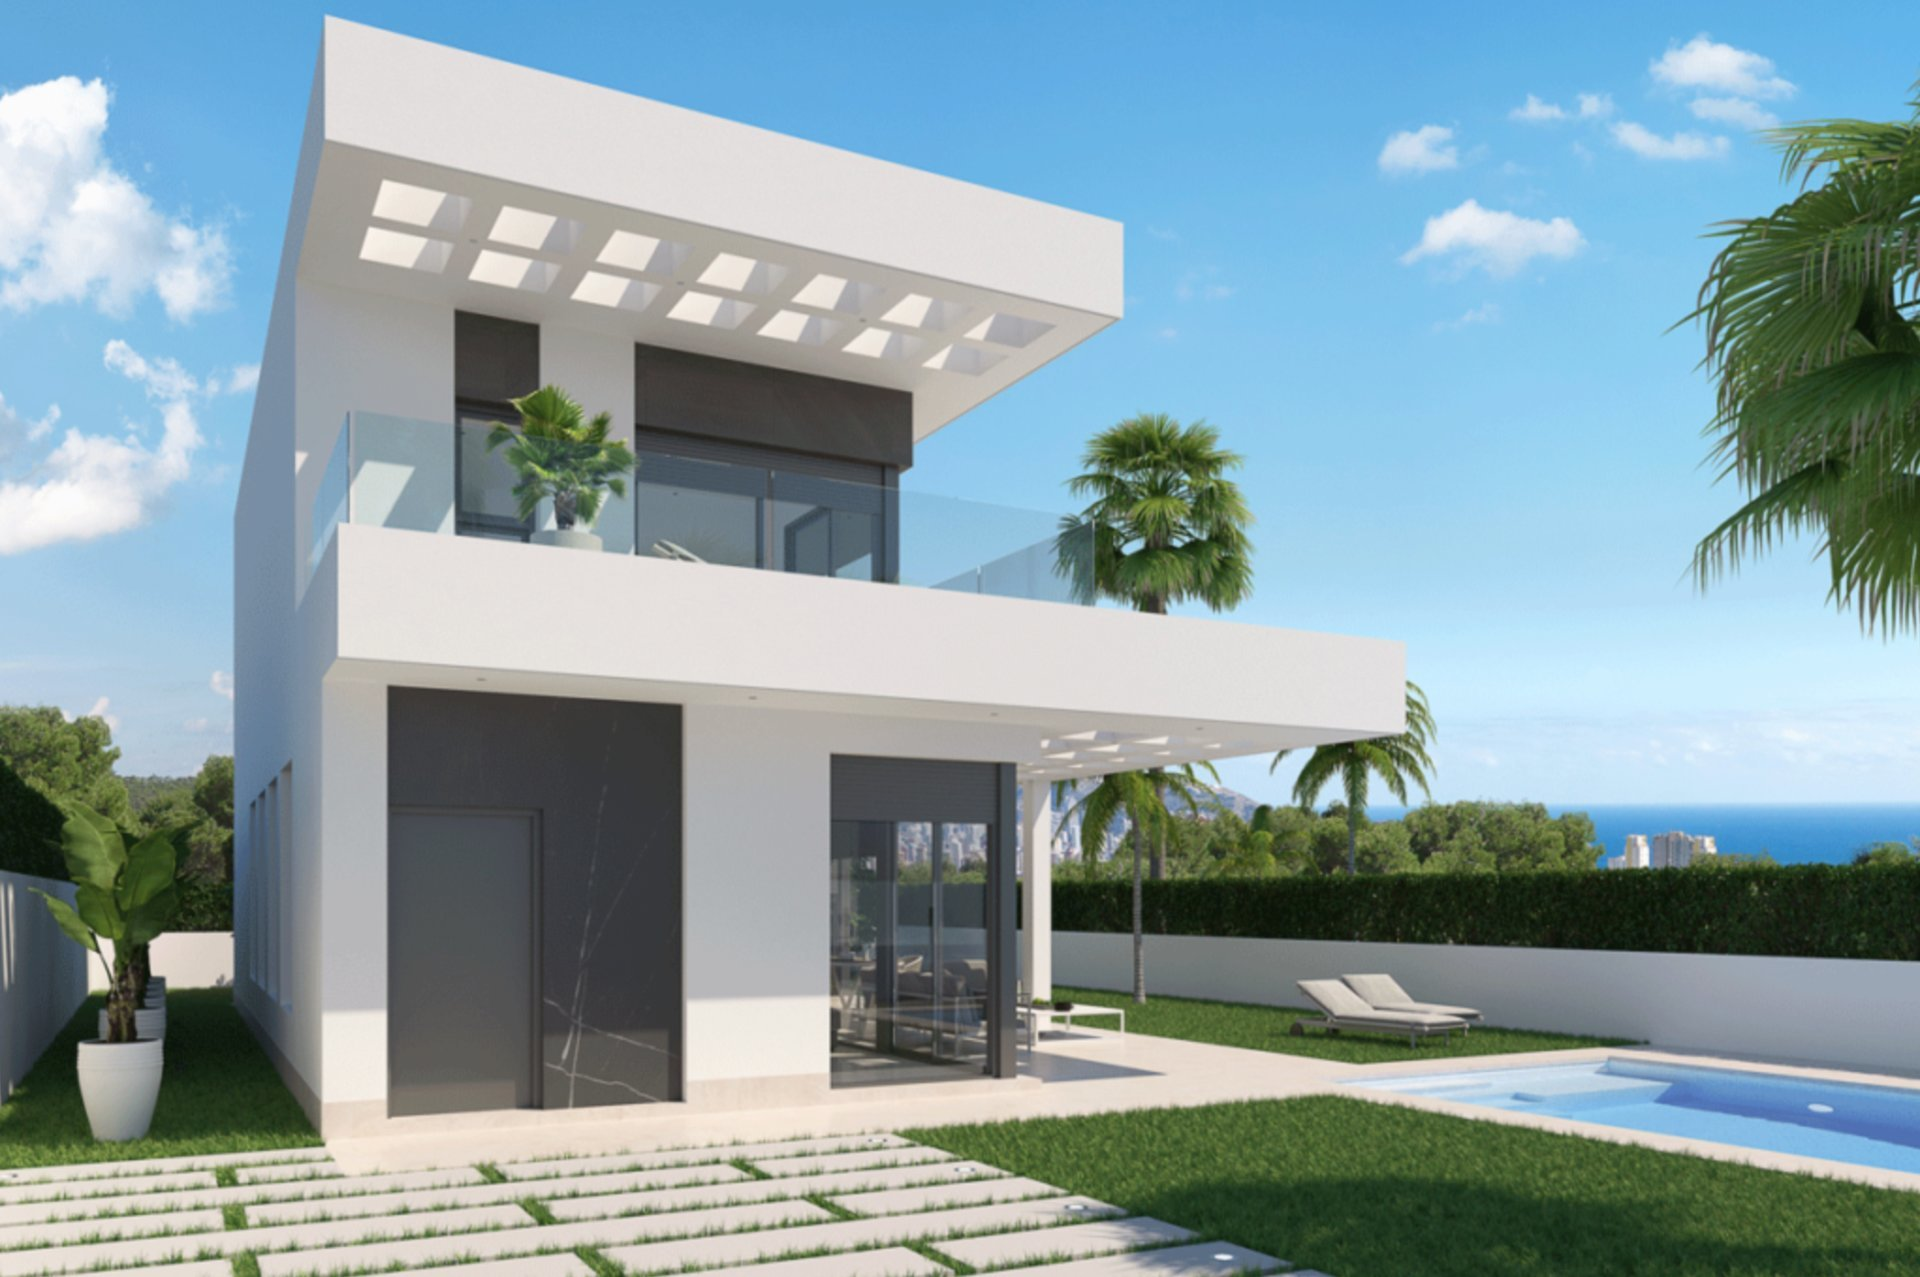 Exclusive residential complex with luxury villas